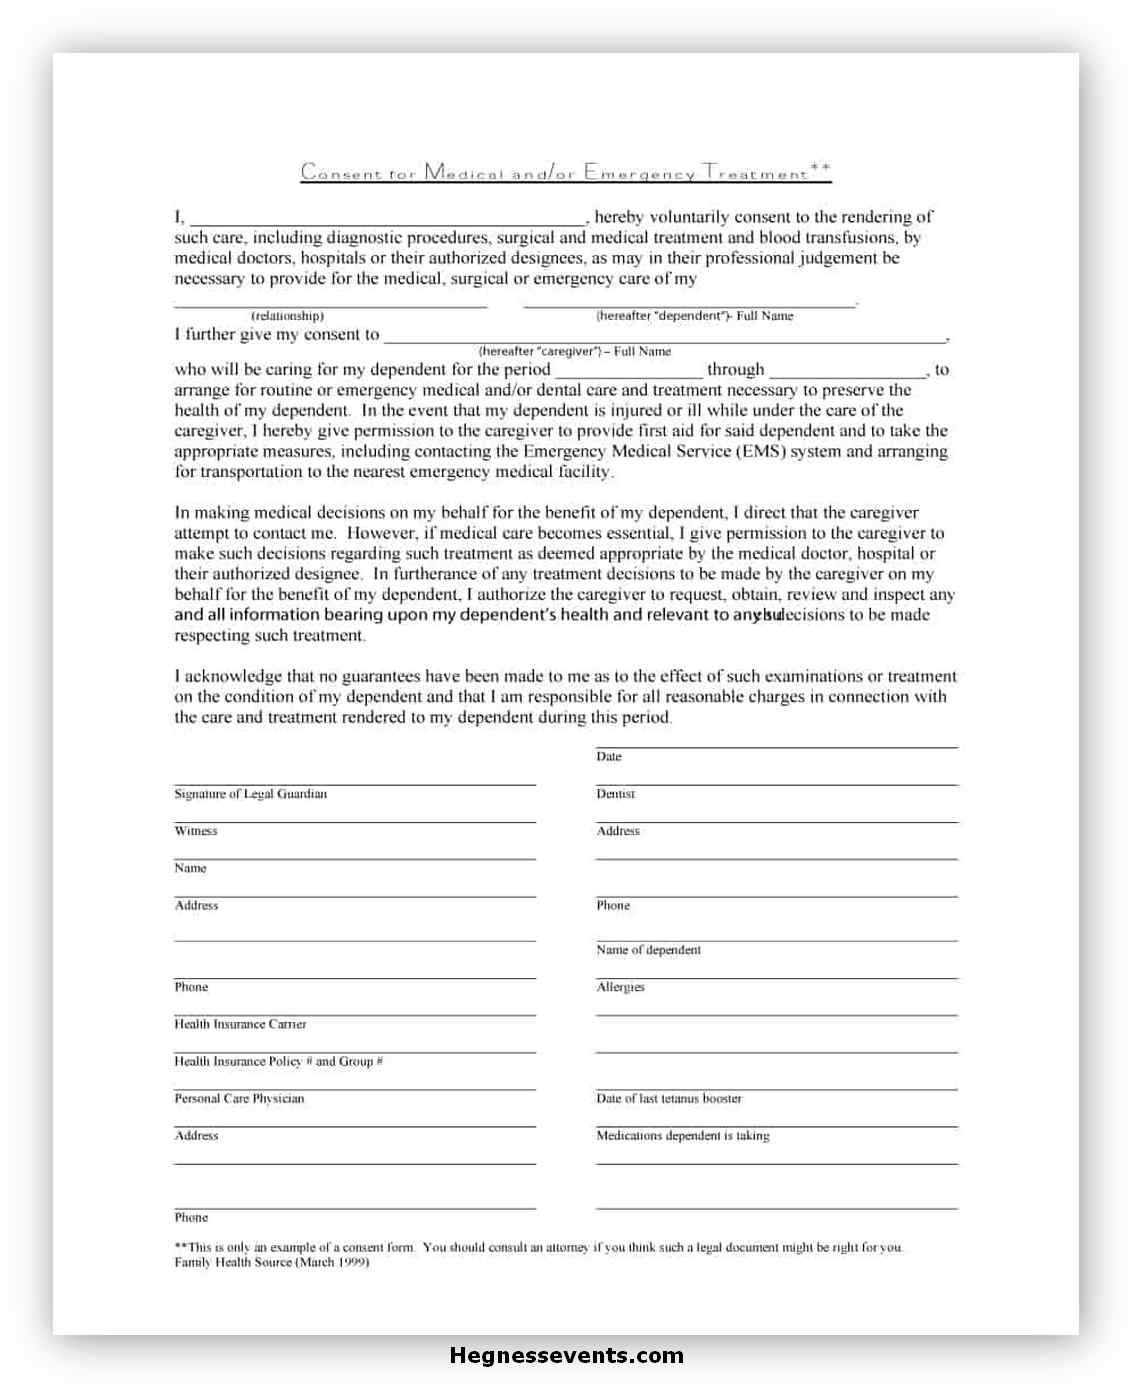 Medical Consent Form Printable 02